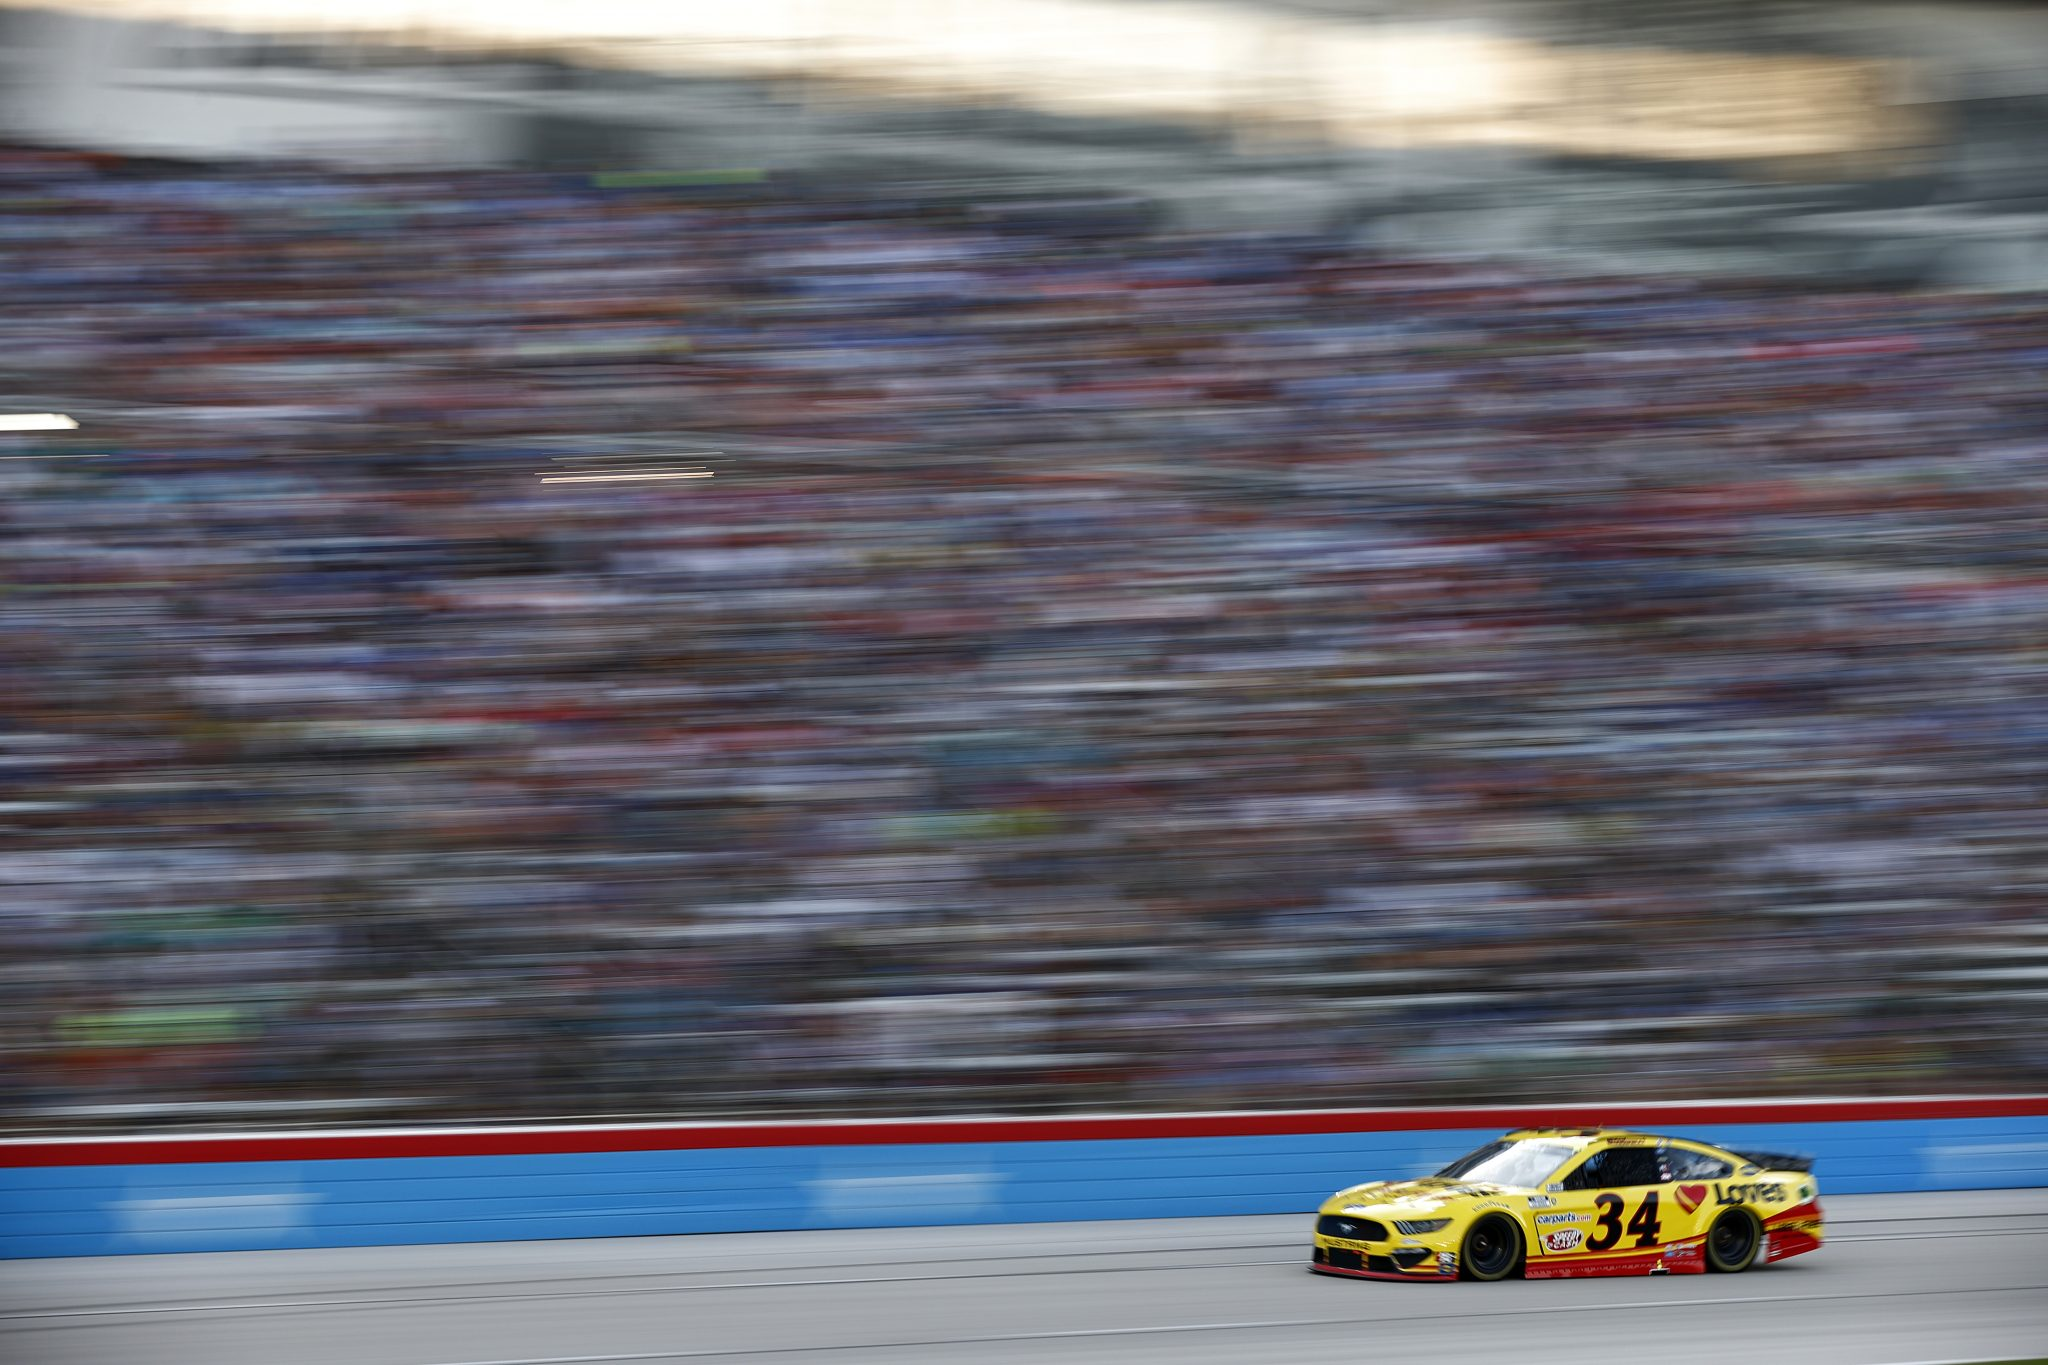 FORT WORTH, TEXAS - JUNE 13: Michael McDowell, driver of the #34 Love's Travel Stops Ford, drives during the NASCAR All-Star Race at Texas Motor Speedway on June 13, 2021 in Fort Worth, Texas. (Photo by Jared C. Tilton/Getty Images) | Getty Images